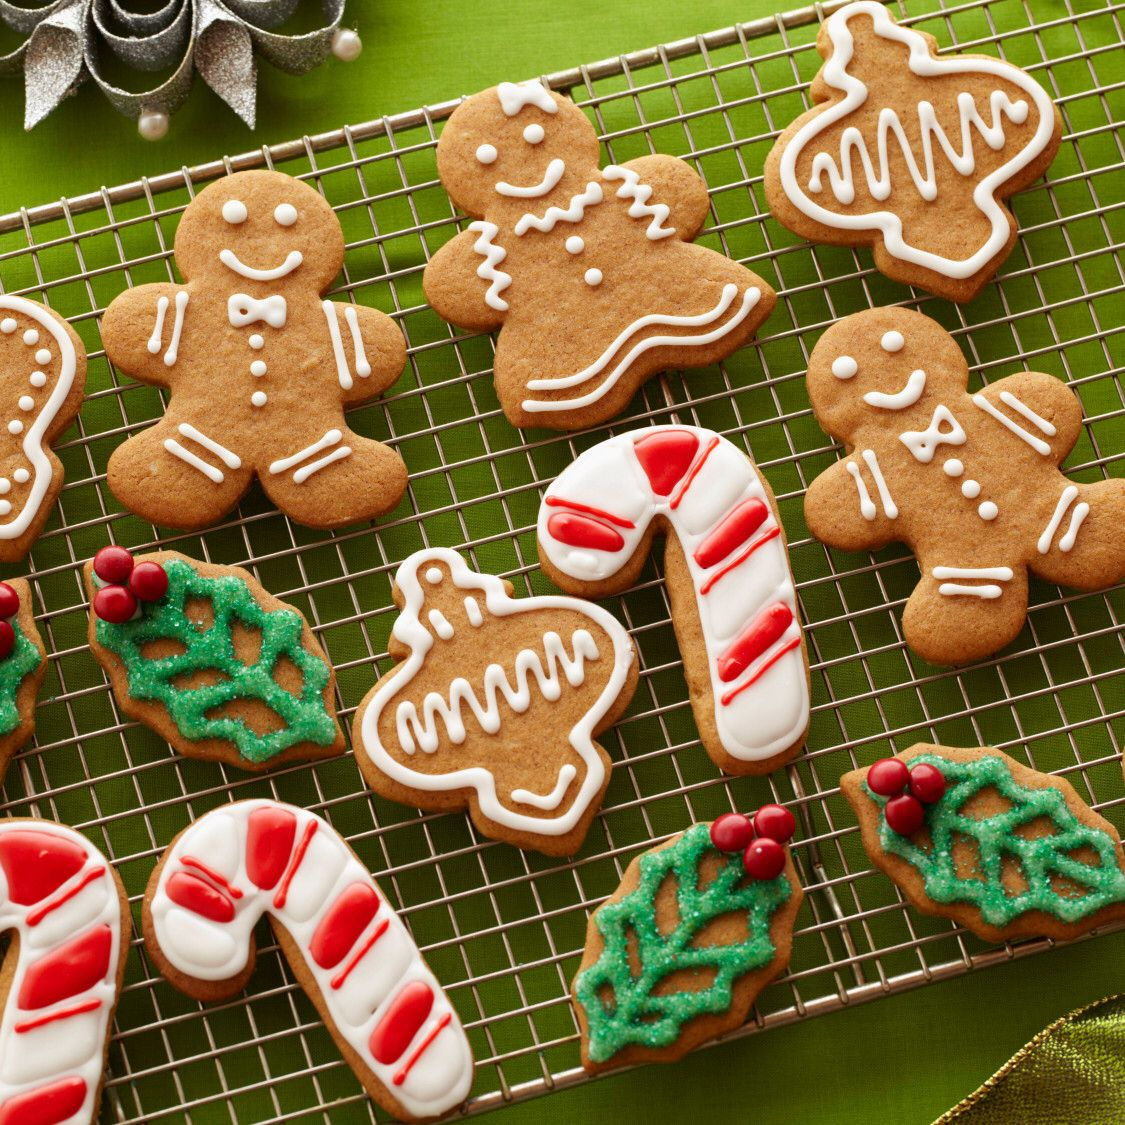 Gingerbread Cookies With Royal Icing Recipe Gingerbread Cookies Gingerbread Cookies Decorated Gingerbread Man Icing Recipe